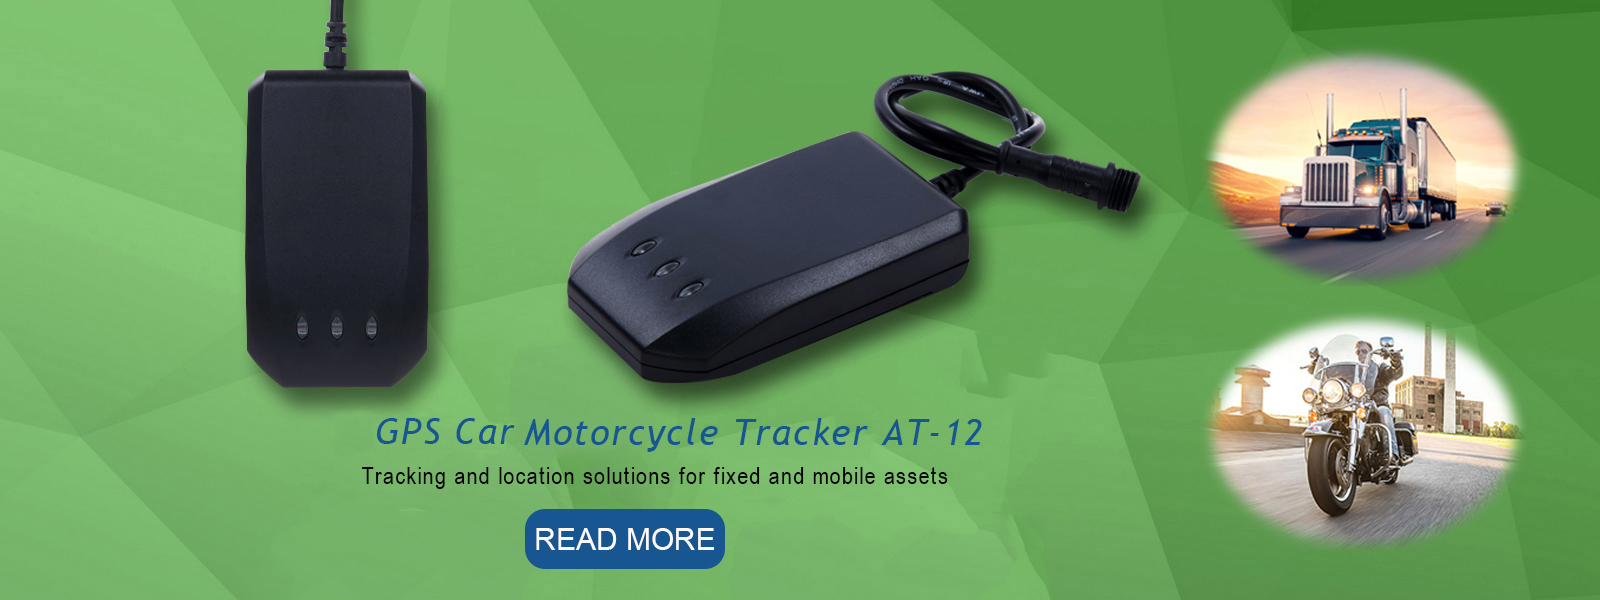 Truck waterproof tracker AT-12A